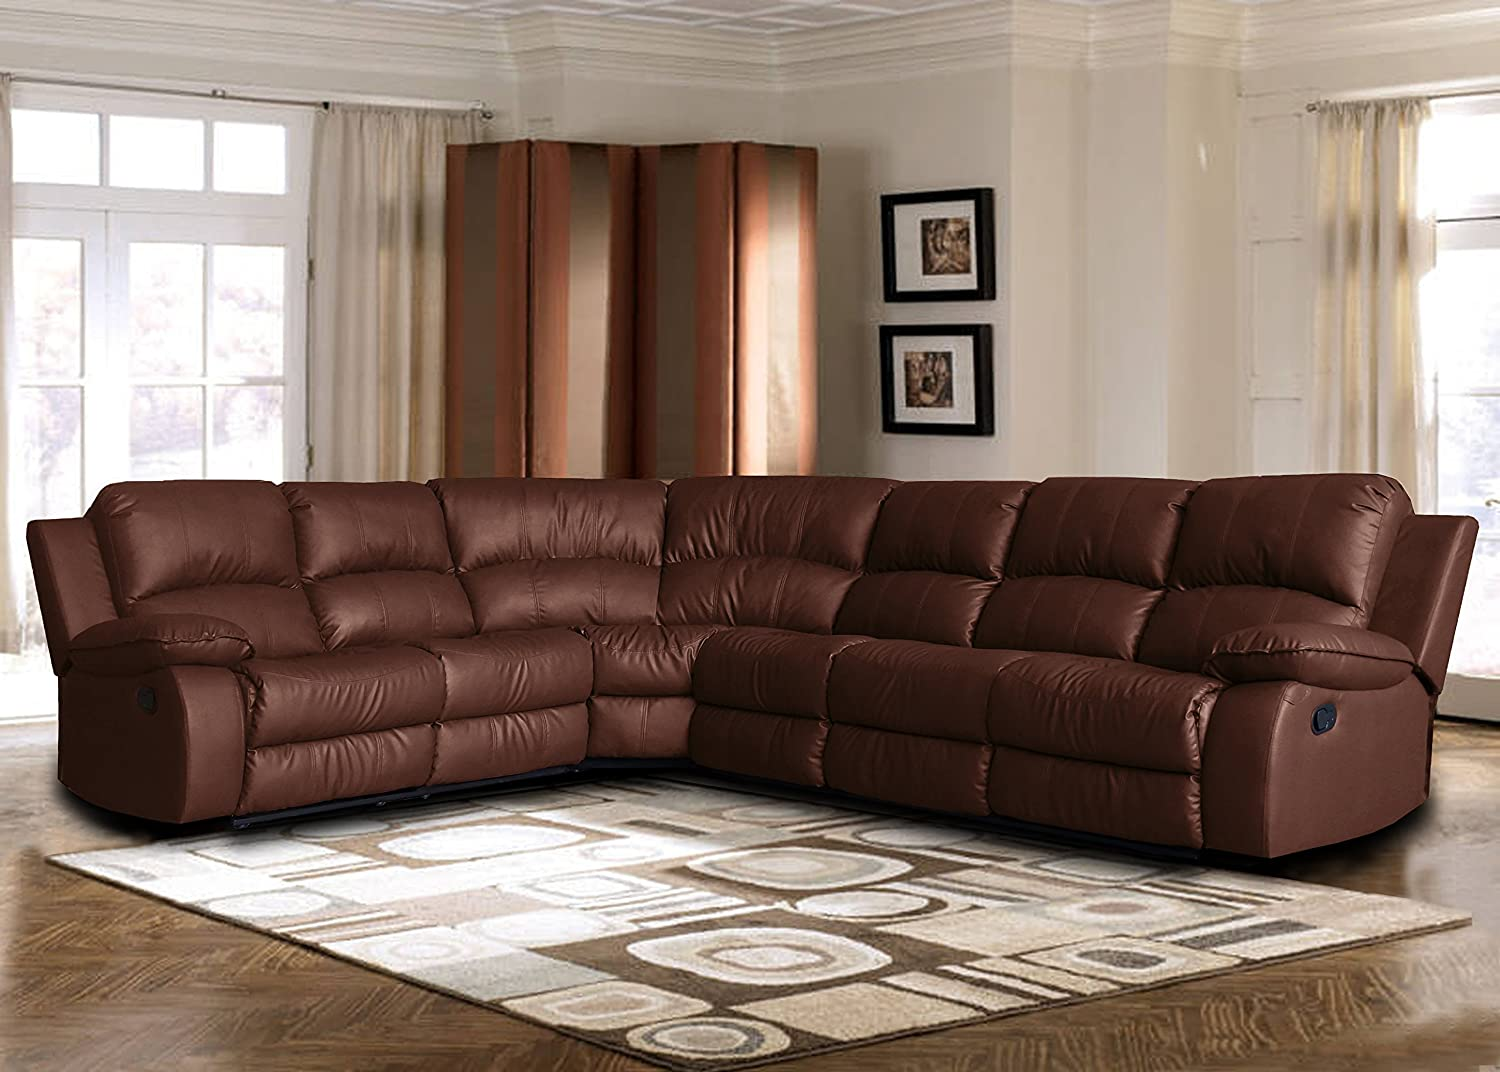 Amazon.com: Large Classic Sofa - Sectional - Traditional - Bonded Leather:  Kitchen & Dining